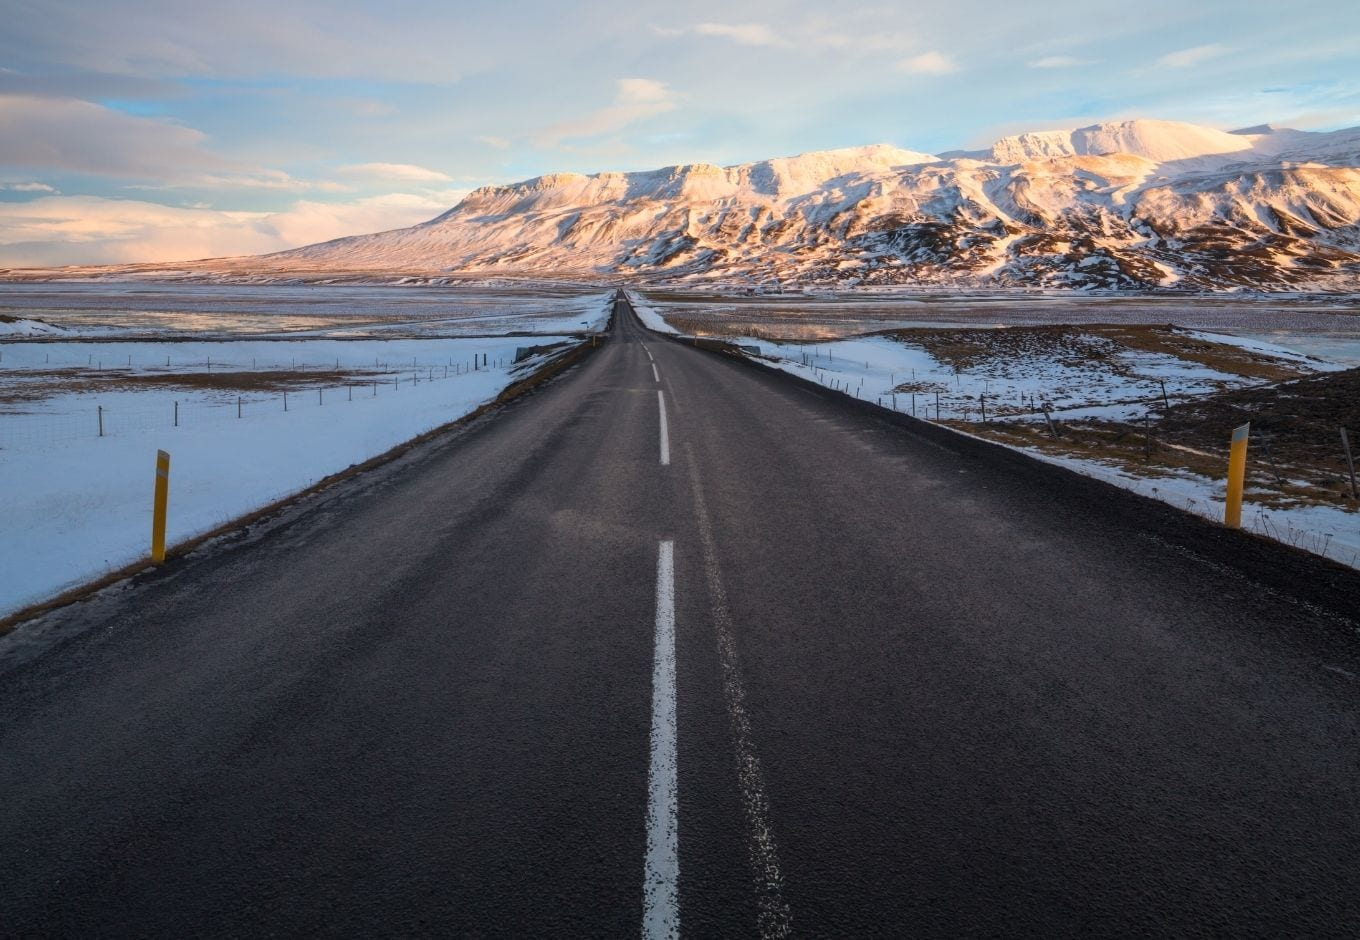 The Ring Road leading to a range of snowy mountains, in Iceland.